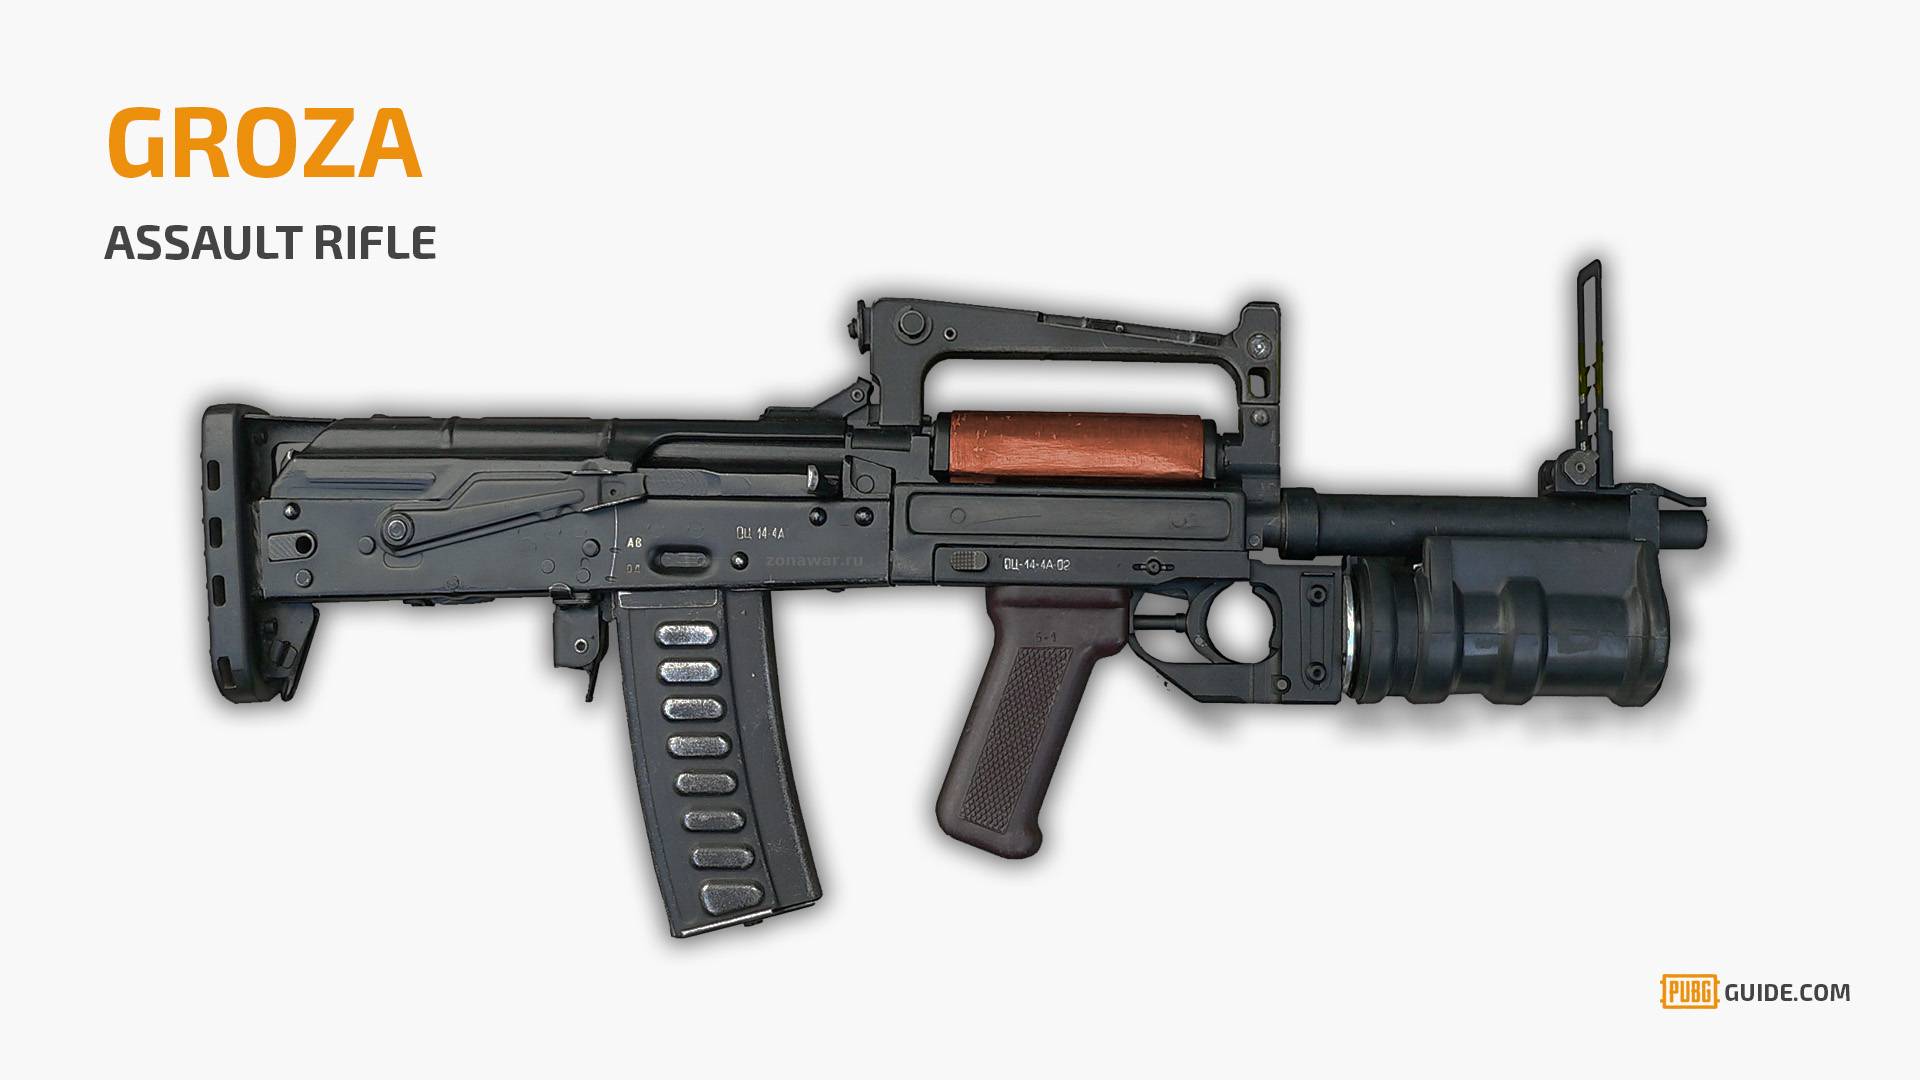 pubg weapon Groza